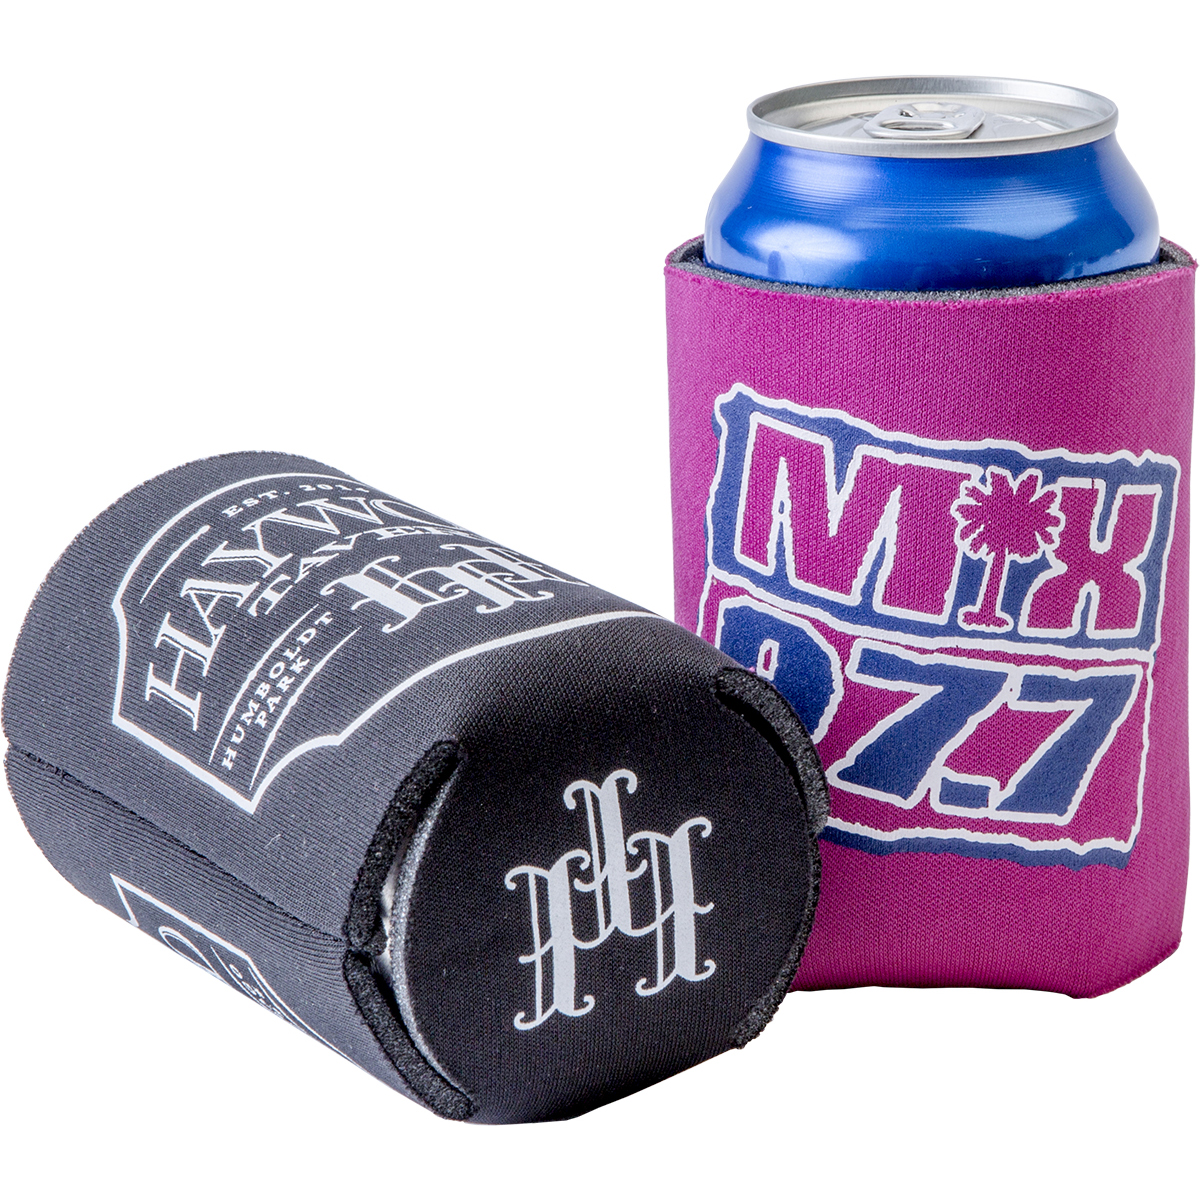 FoamZone USA Made Collapsible Can Cooler